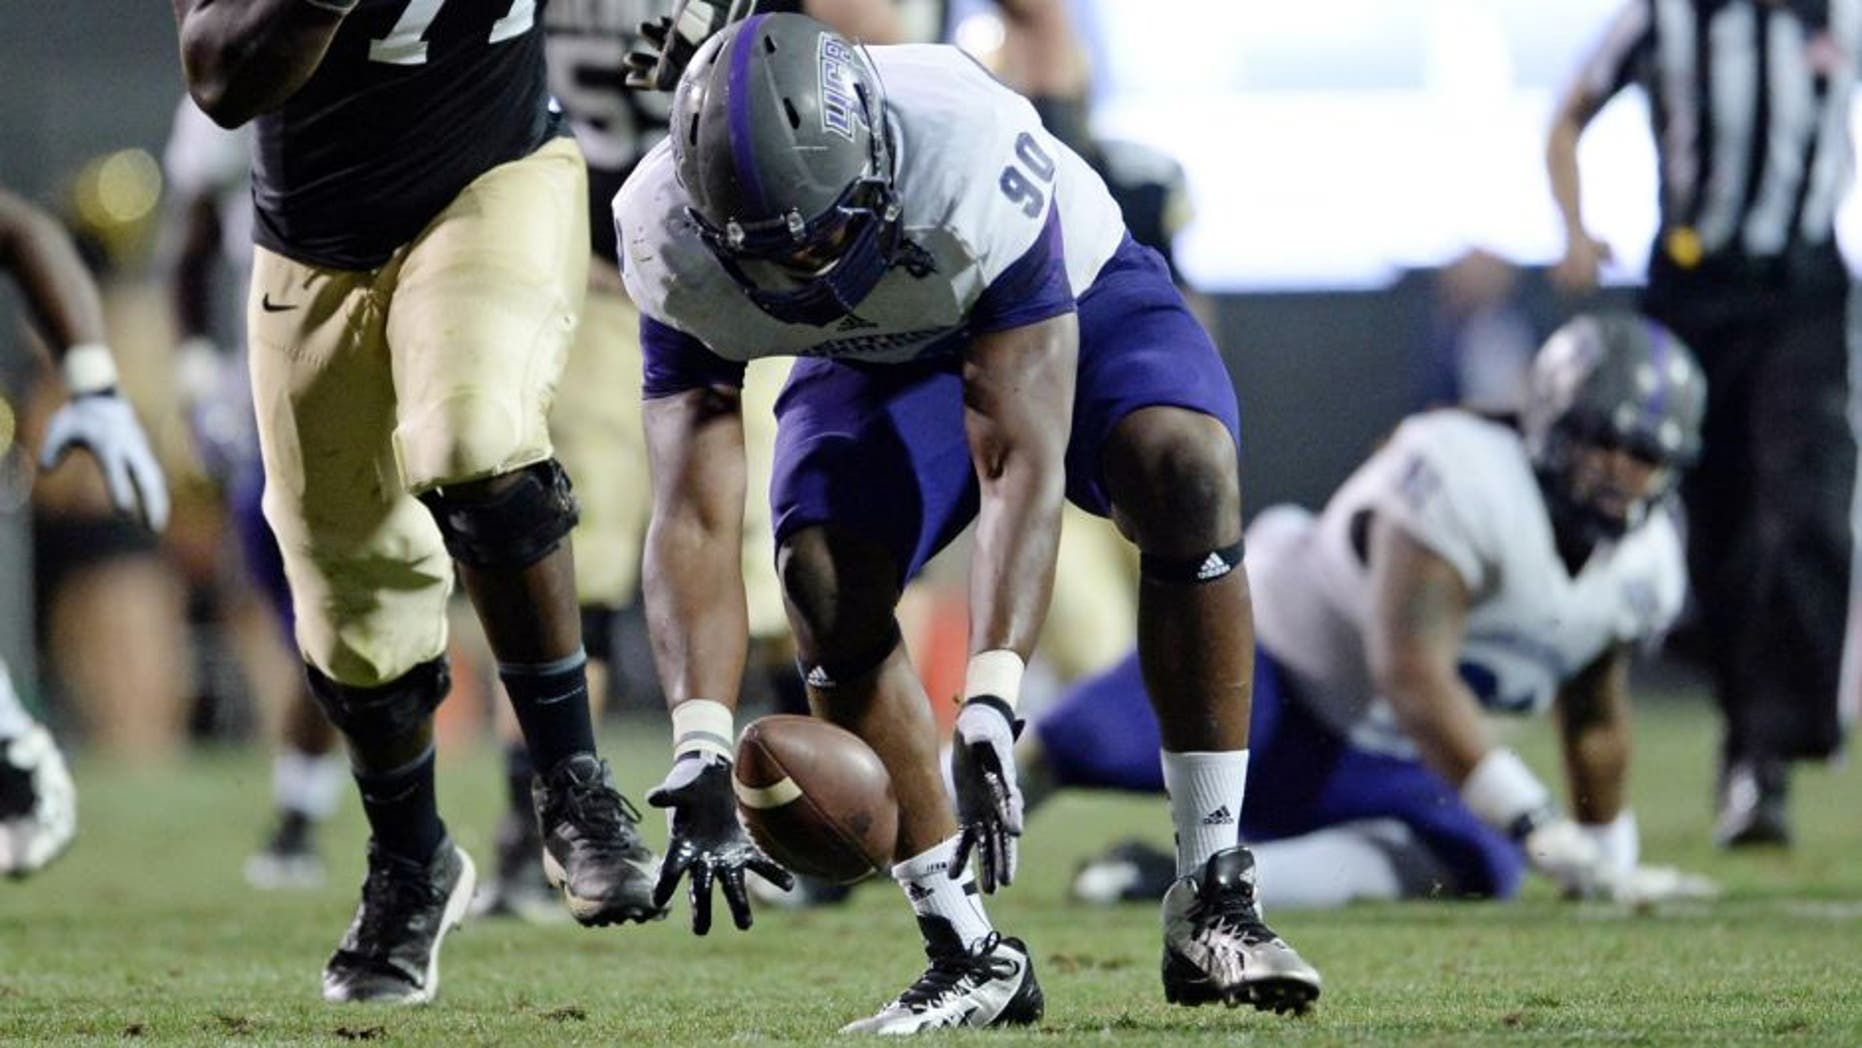 Sep 7, 2013; Boulder, CO, USA; Colorado Buffaloes offensive linesman Stephane Nembot (77) watches as Central Arkansas Bears defensive end Jonathan Woodard (90) chases down a fumble made by quarterback Connor Wood (not pictured) in the third quarter at Folsom Field. The Buffaloes defeated the Bears 38-24. Mandatory Credit: Ron Chenoy-USA TODAY Sports